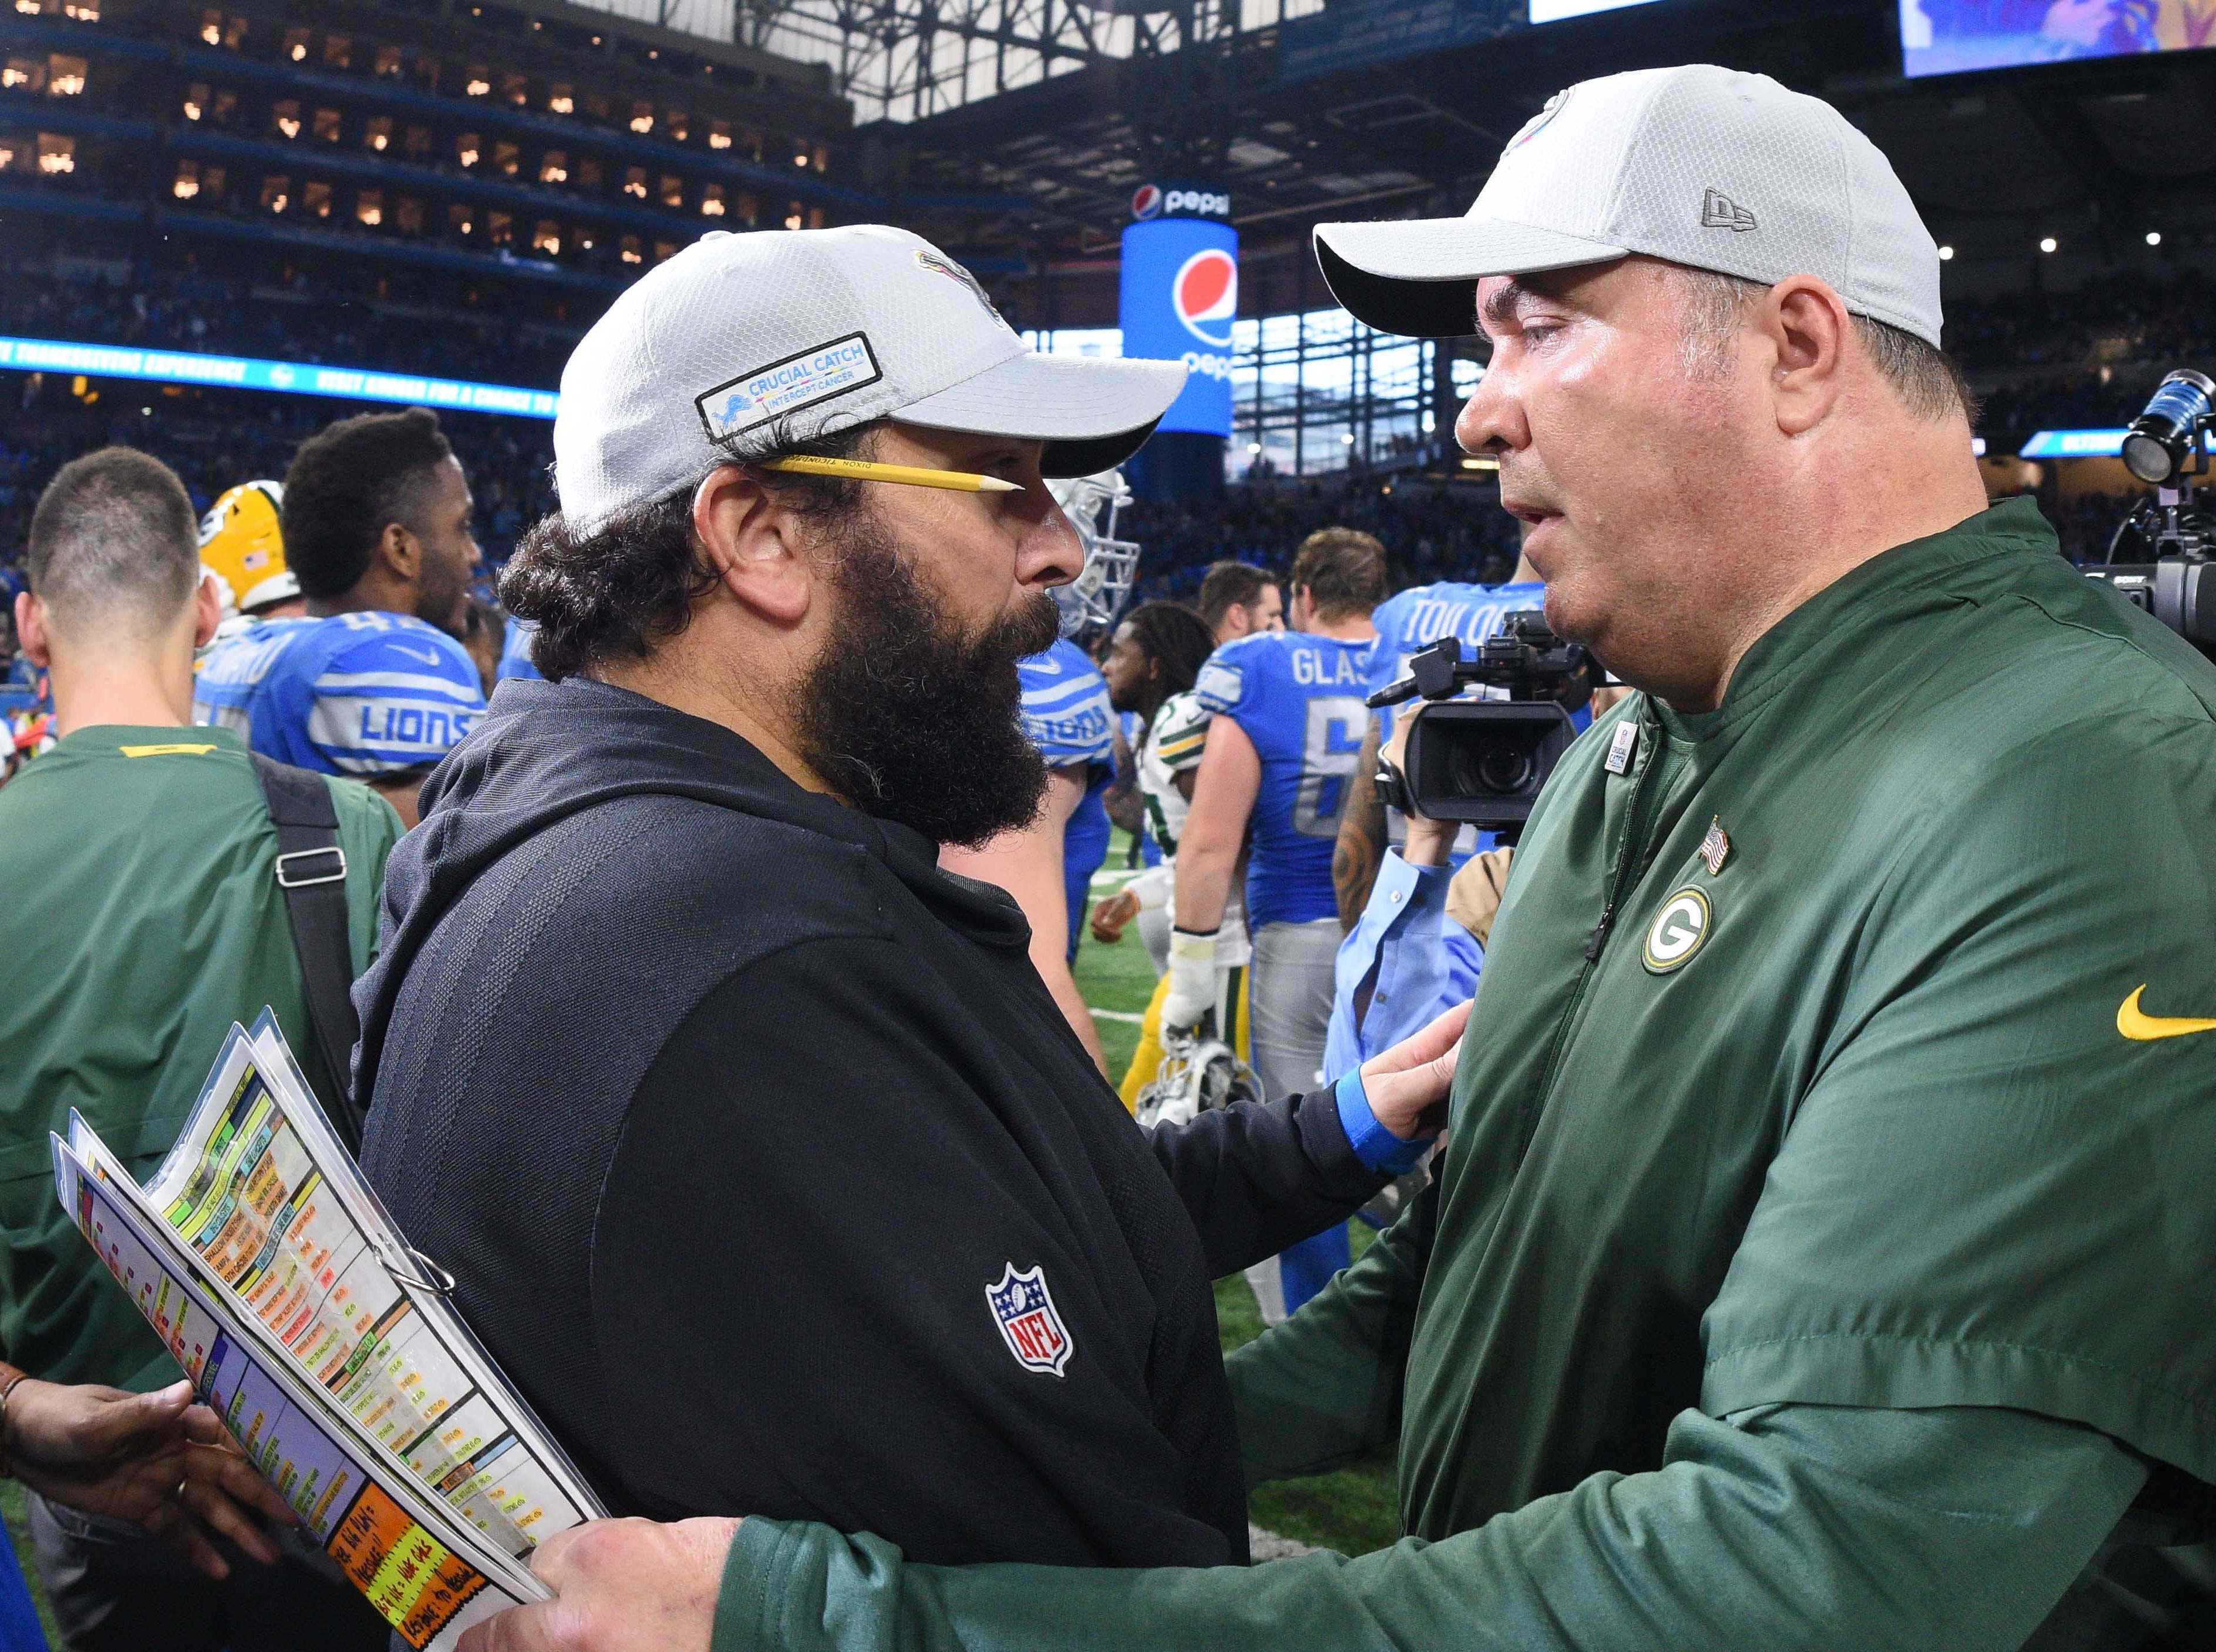 Oct 7, 2018; Detroit, MI, USA; Detroit Lions head coach Matt Patricia and Green Bay Packers head coach Mike McCarthy after the game at Ford Field. Mandatory Credit: Tim Fuller-USA TODAY Sports